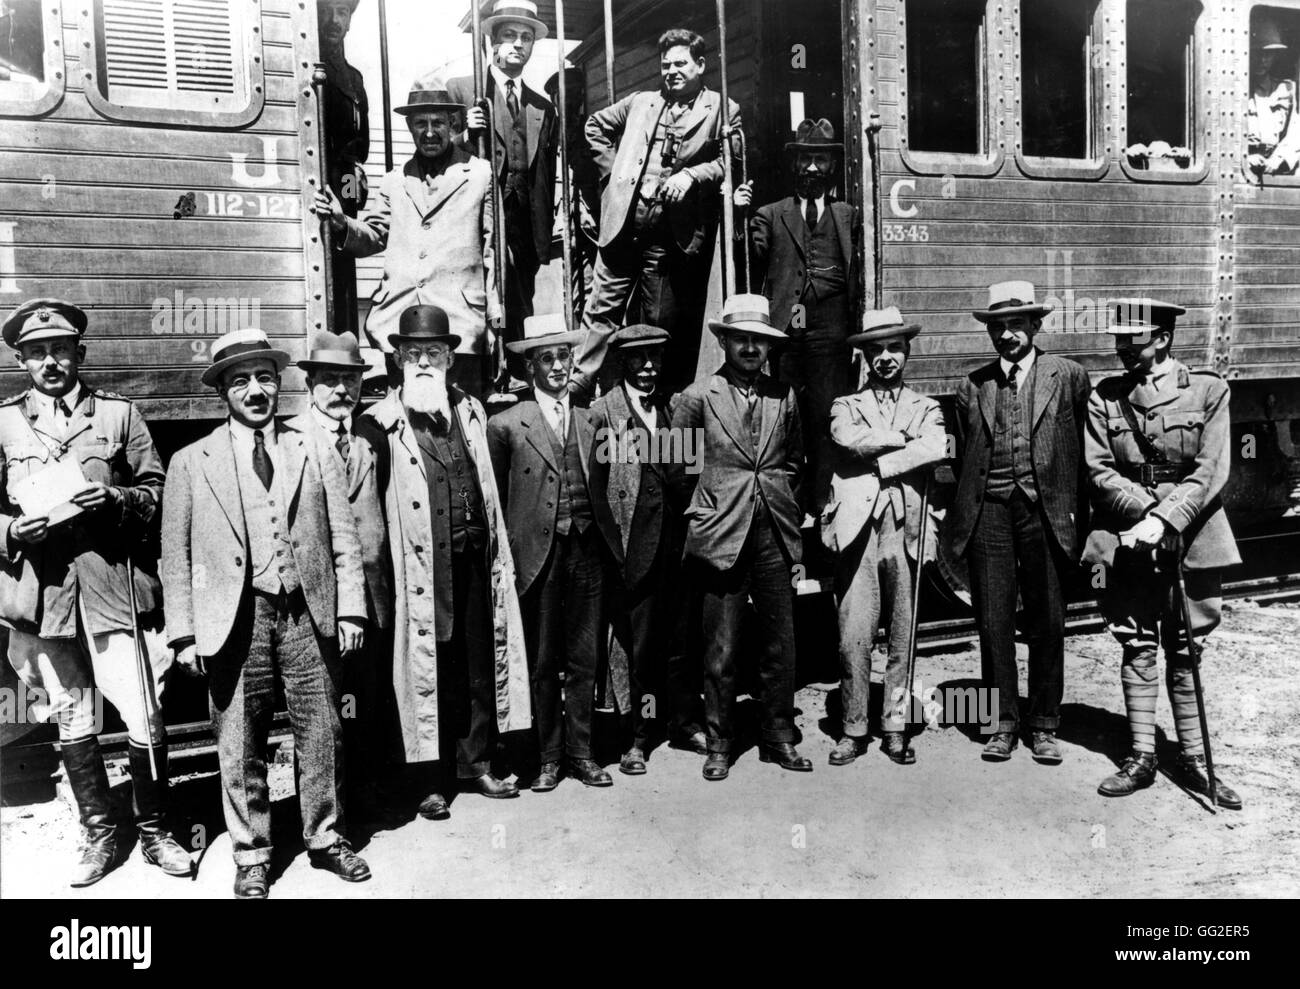 Arrival of the members of the Zionist Committee April 3, 1918 Palestine, Zionism B.D.I.C. - Stock Image